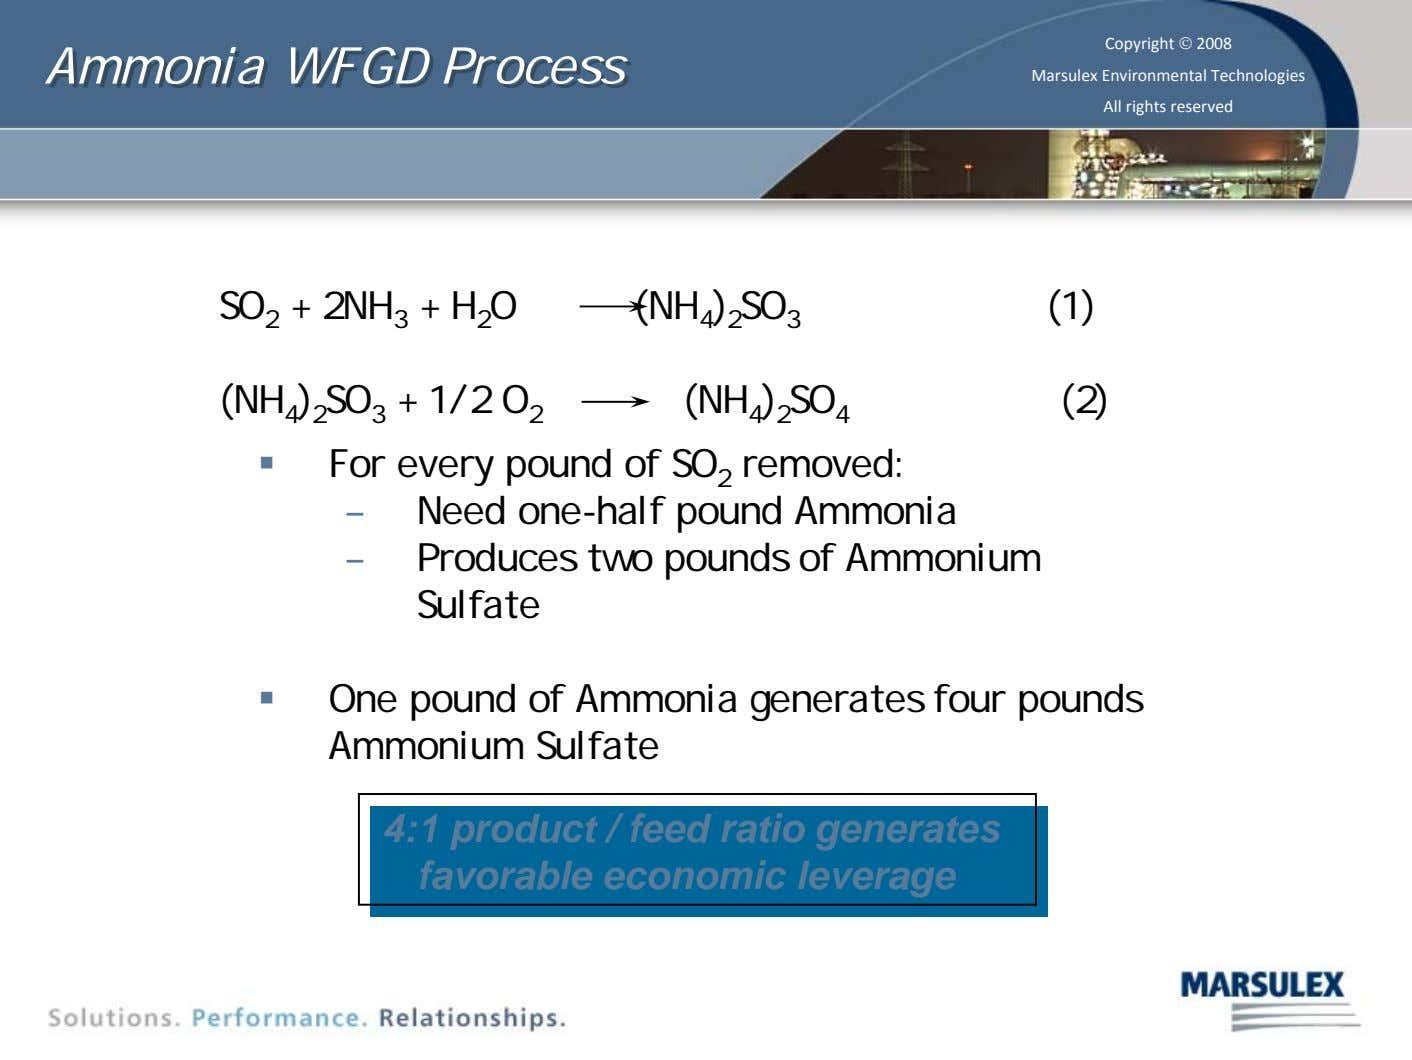 Ammonia Ammonia WFGD WFGD Process Process Copyright © 2008 Marsulex Environmental Technologies All rights reserved SO